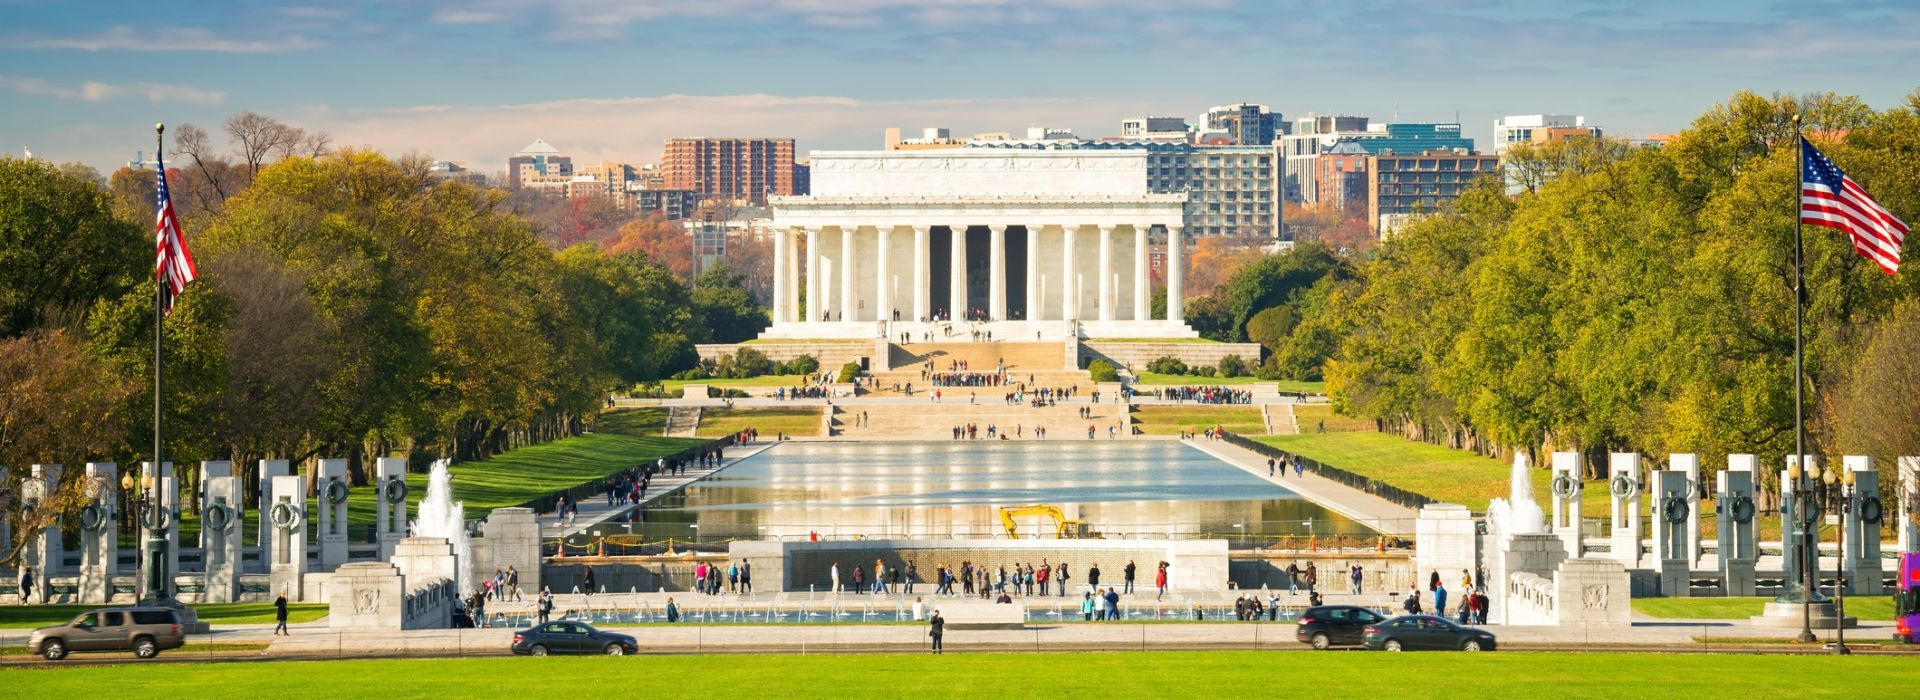 Festivals and events Tours in Philadelphia